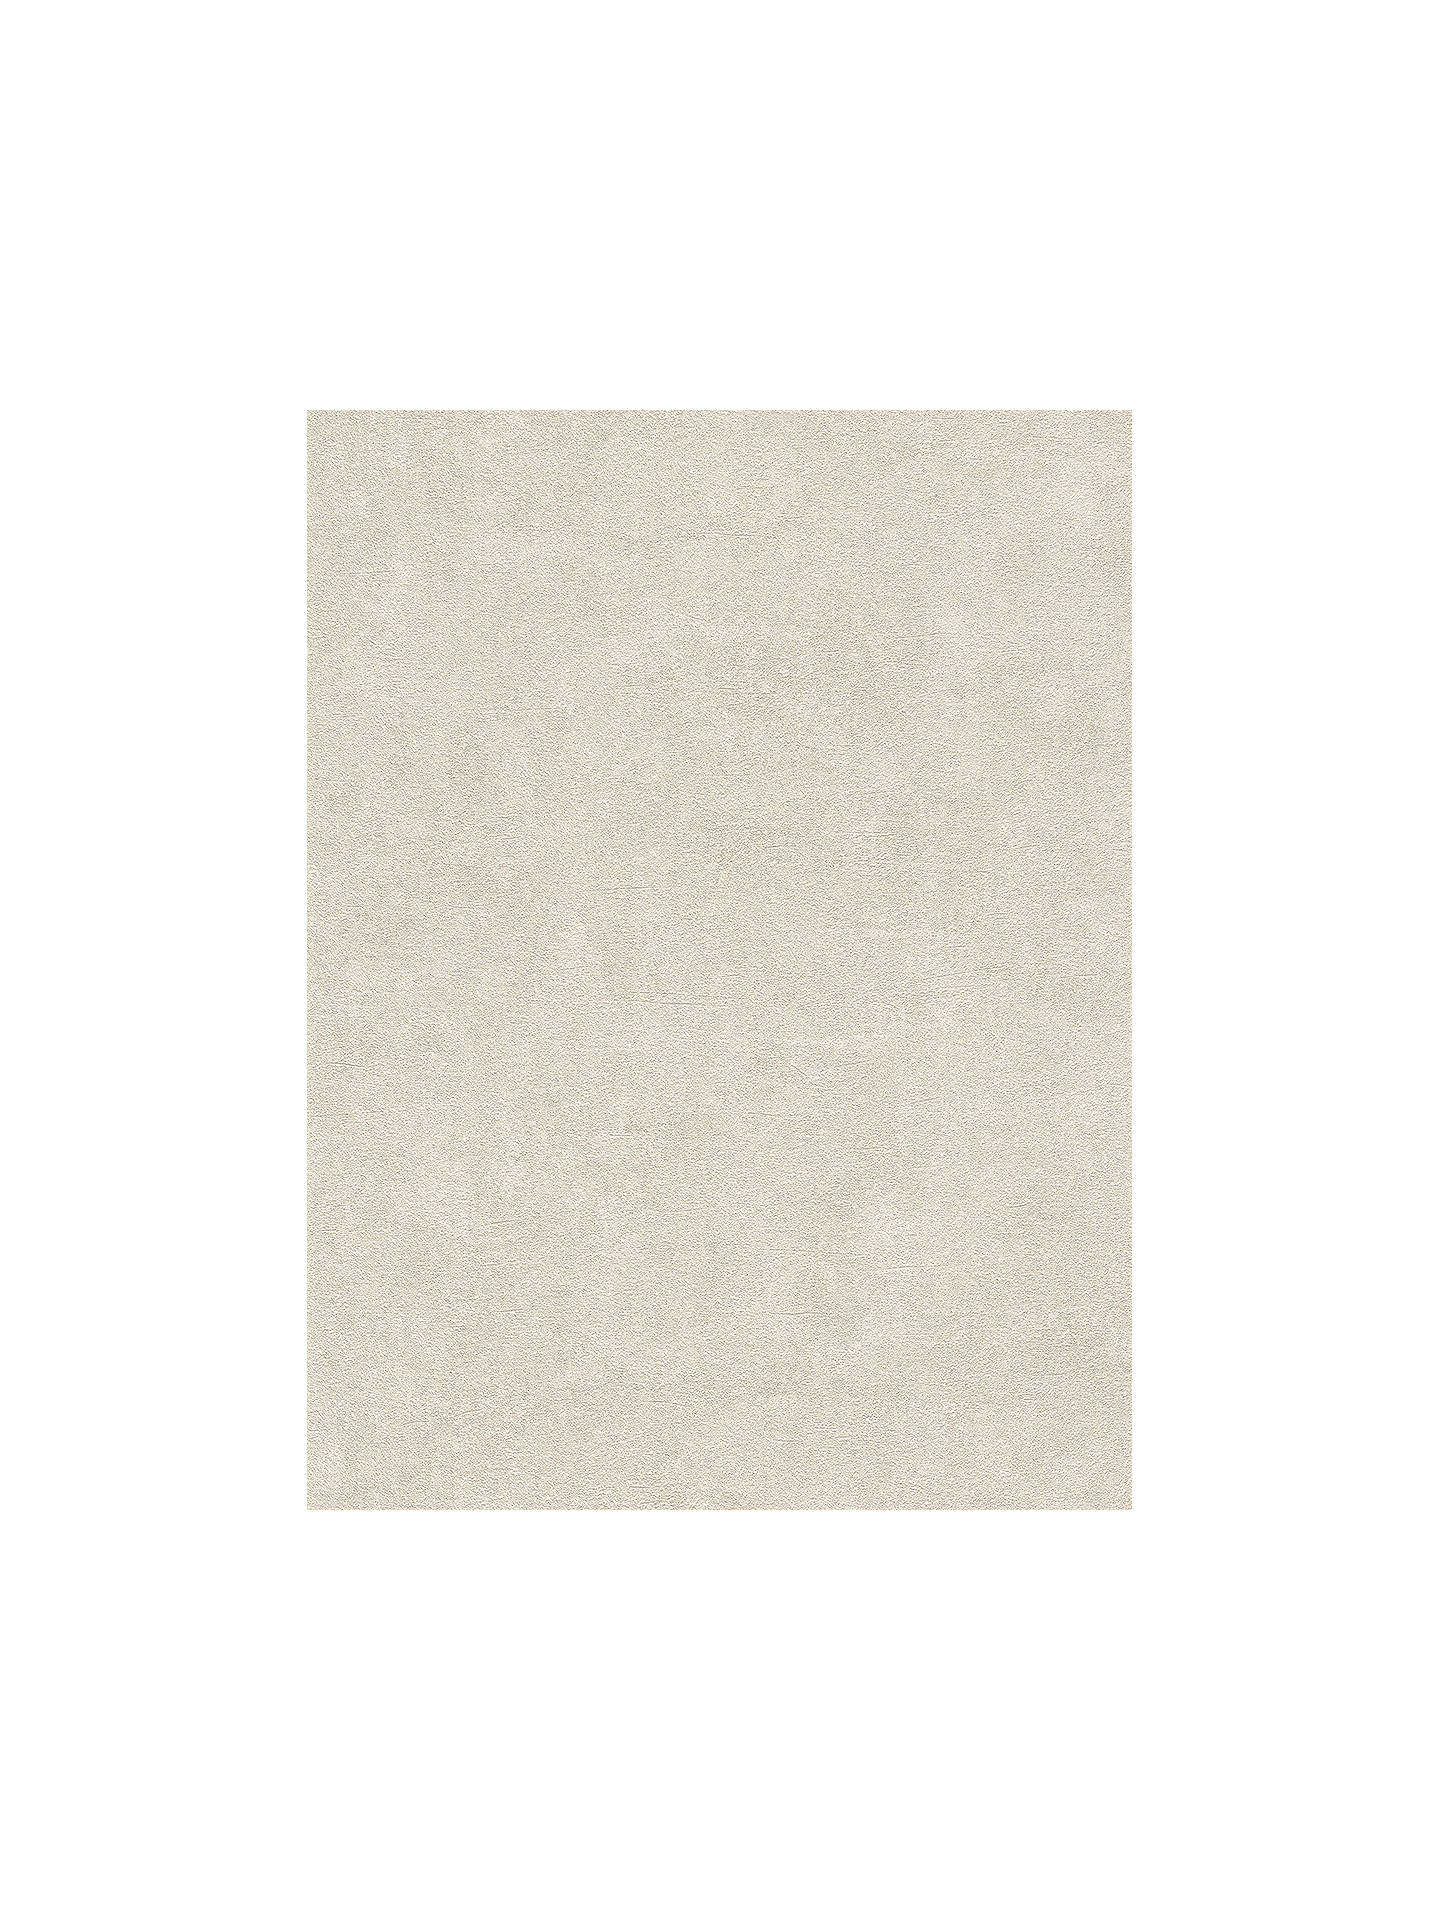 Buy Galerie Concrete Wallpaper, 467505 Online at johnlewis.com